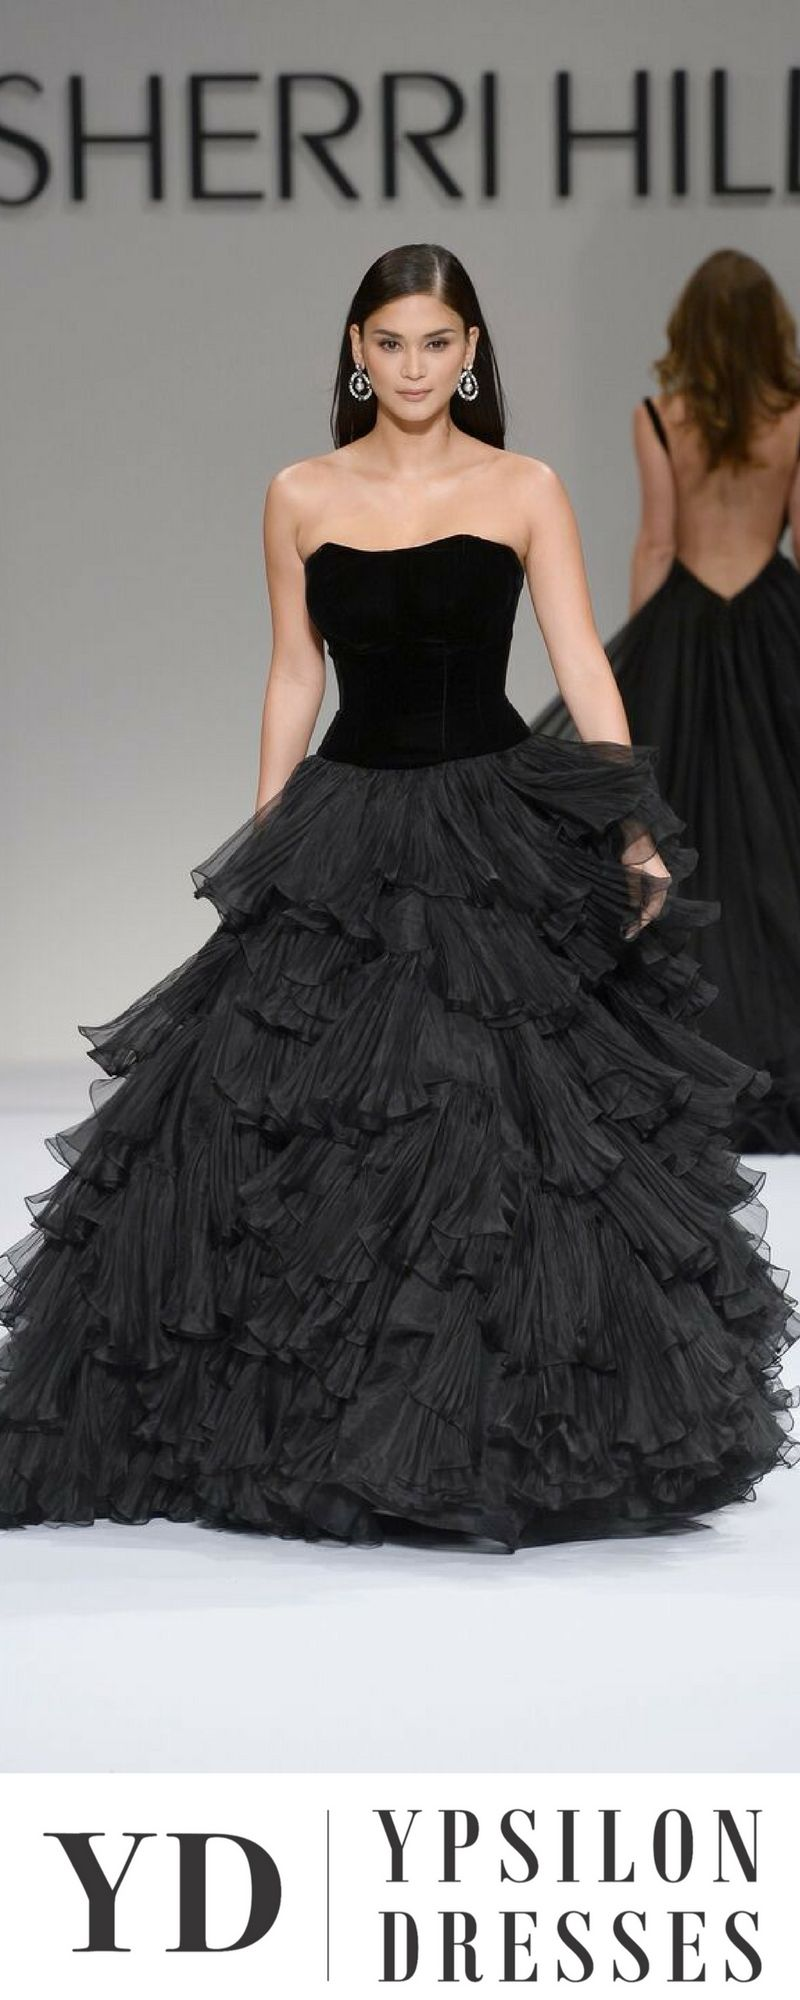 bfc7c8ab321 Sherri Hill Black Velvet Ballgown Ruffle Skirt Strapless Ypsilon Dresses  SLC Utah Store Prom Pageant Evening wear High School Dance Dresses  Homecoming ...